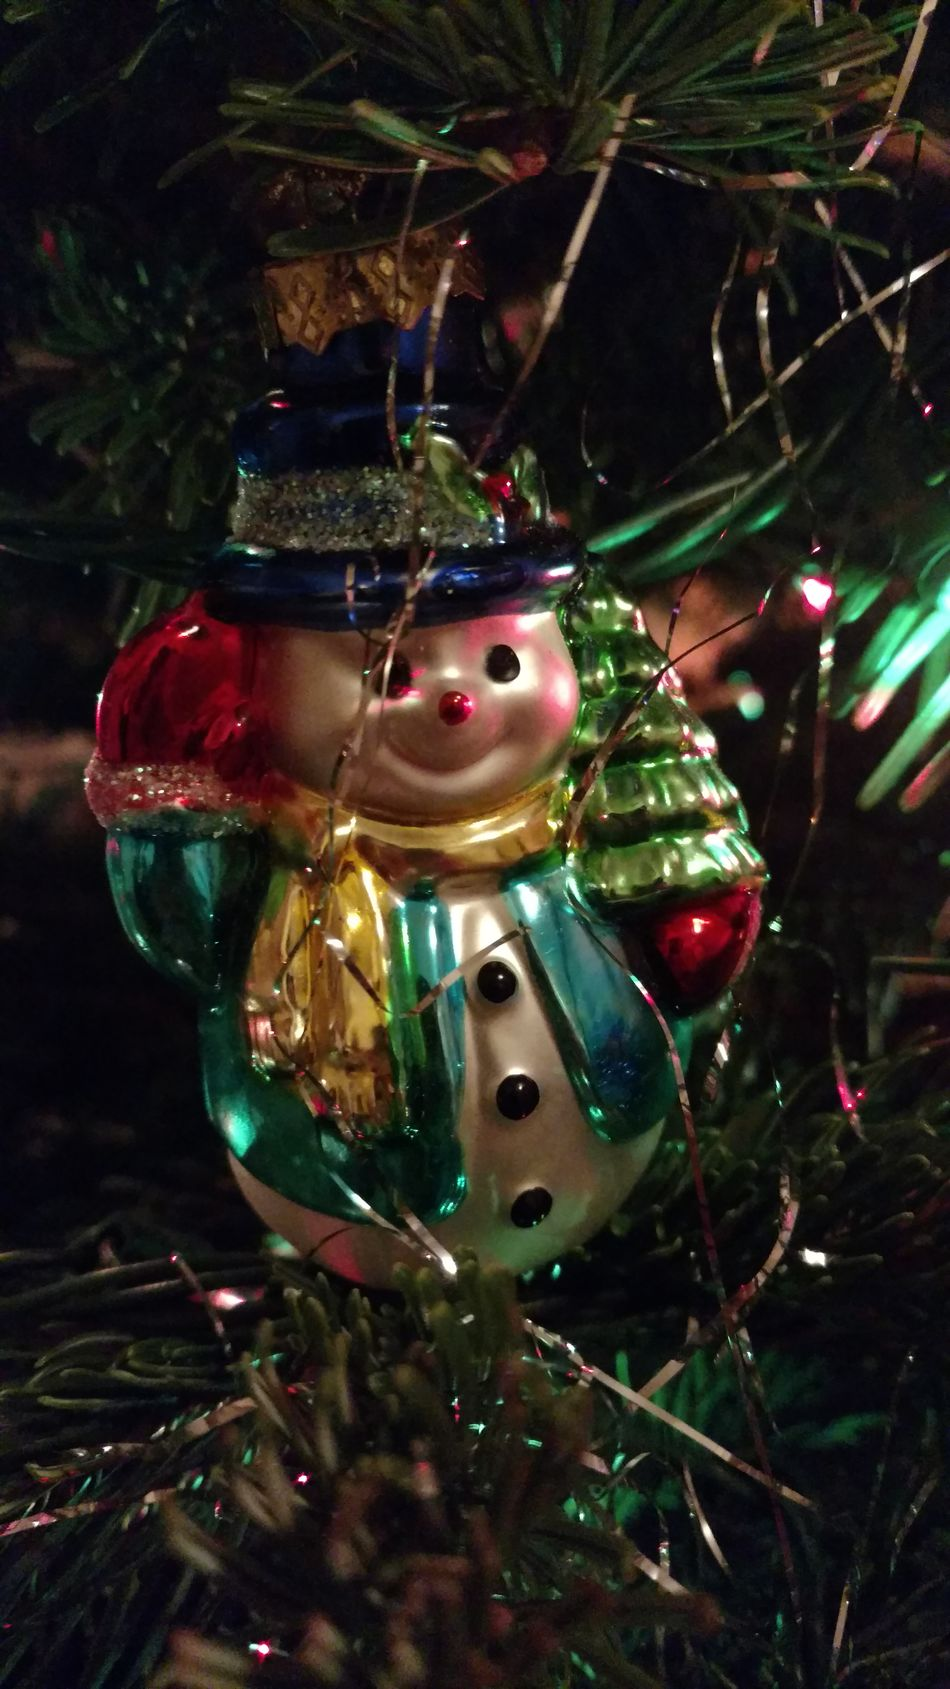 Christmas Celebration Christmas Decoration No People Christmas Tree Close-up Indoors  Christmas Ornament Family Time Winter Taking Photos